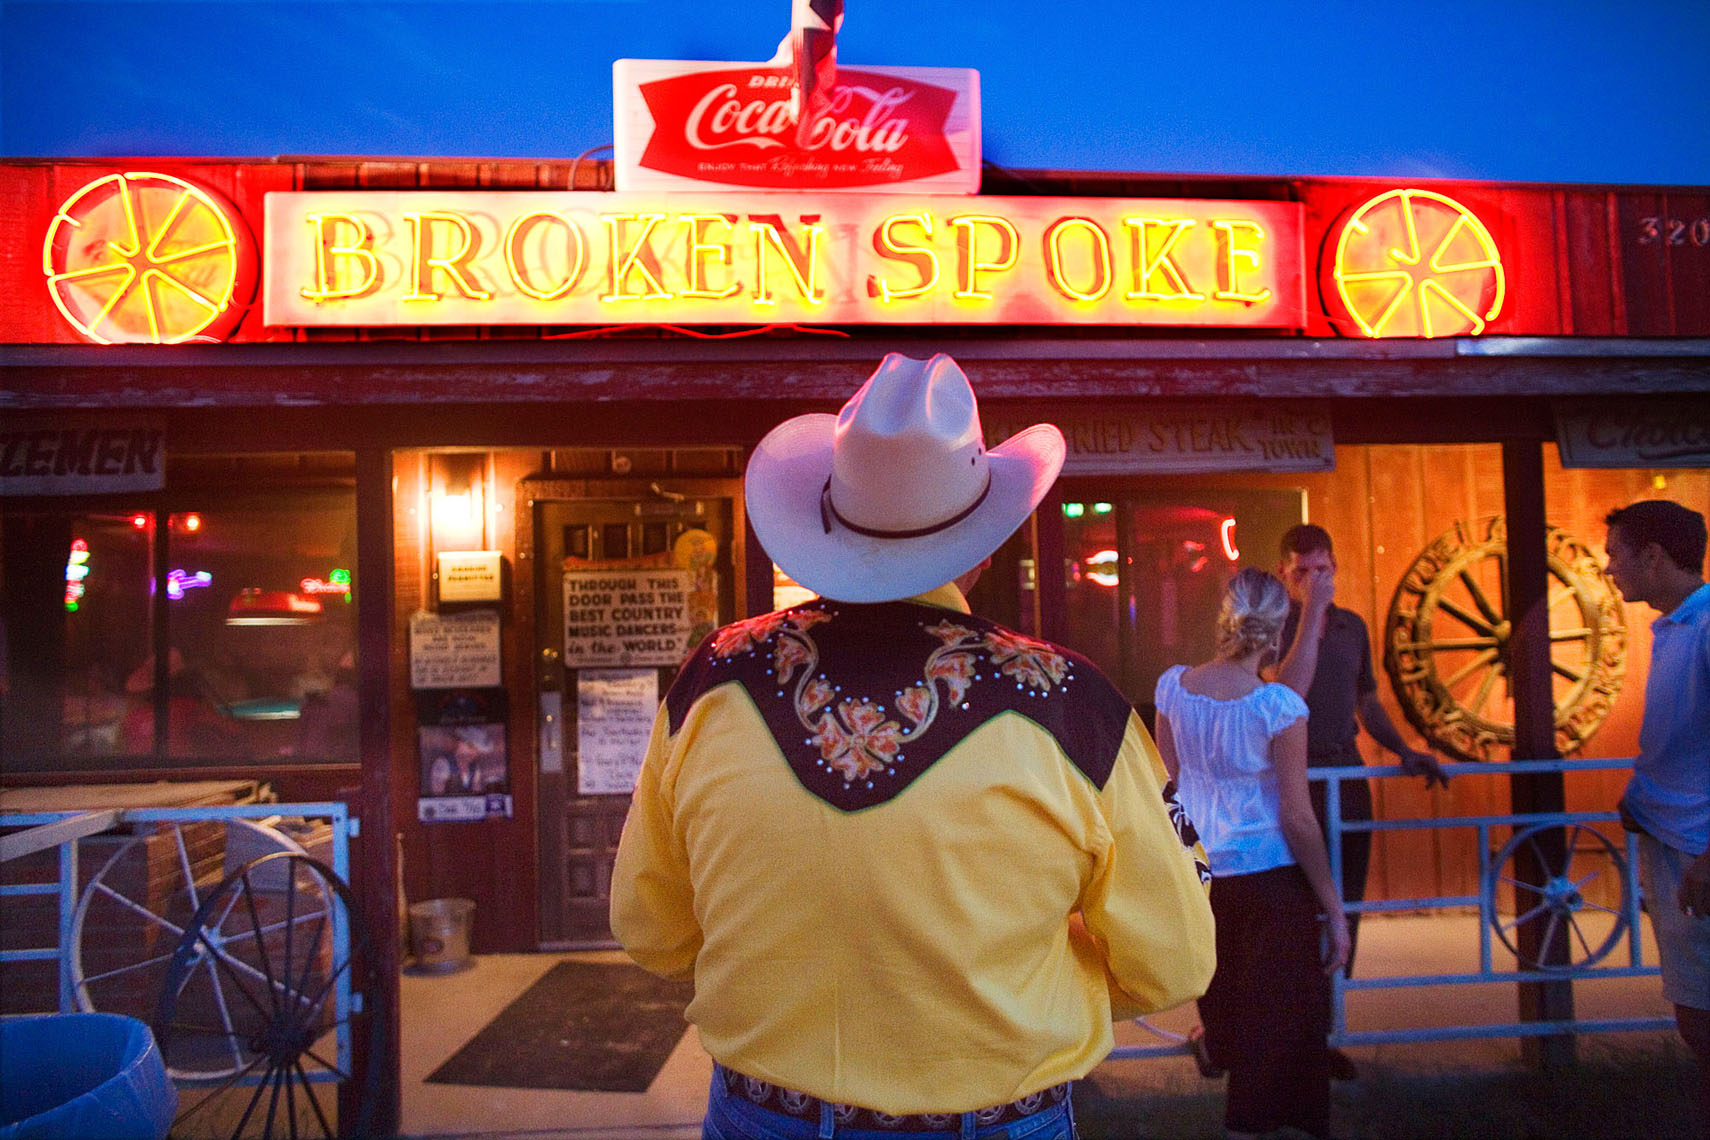 1014The Broken Spoke, Honky Tonk, Country Dancehall, Austin